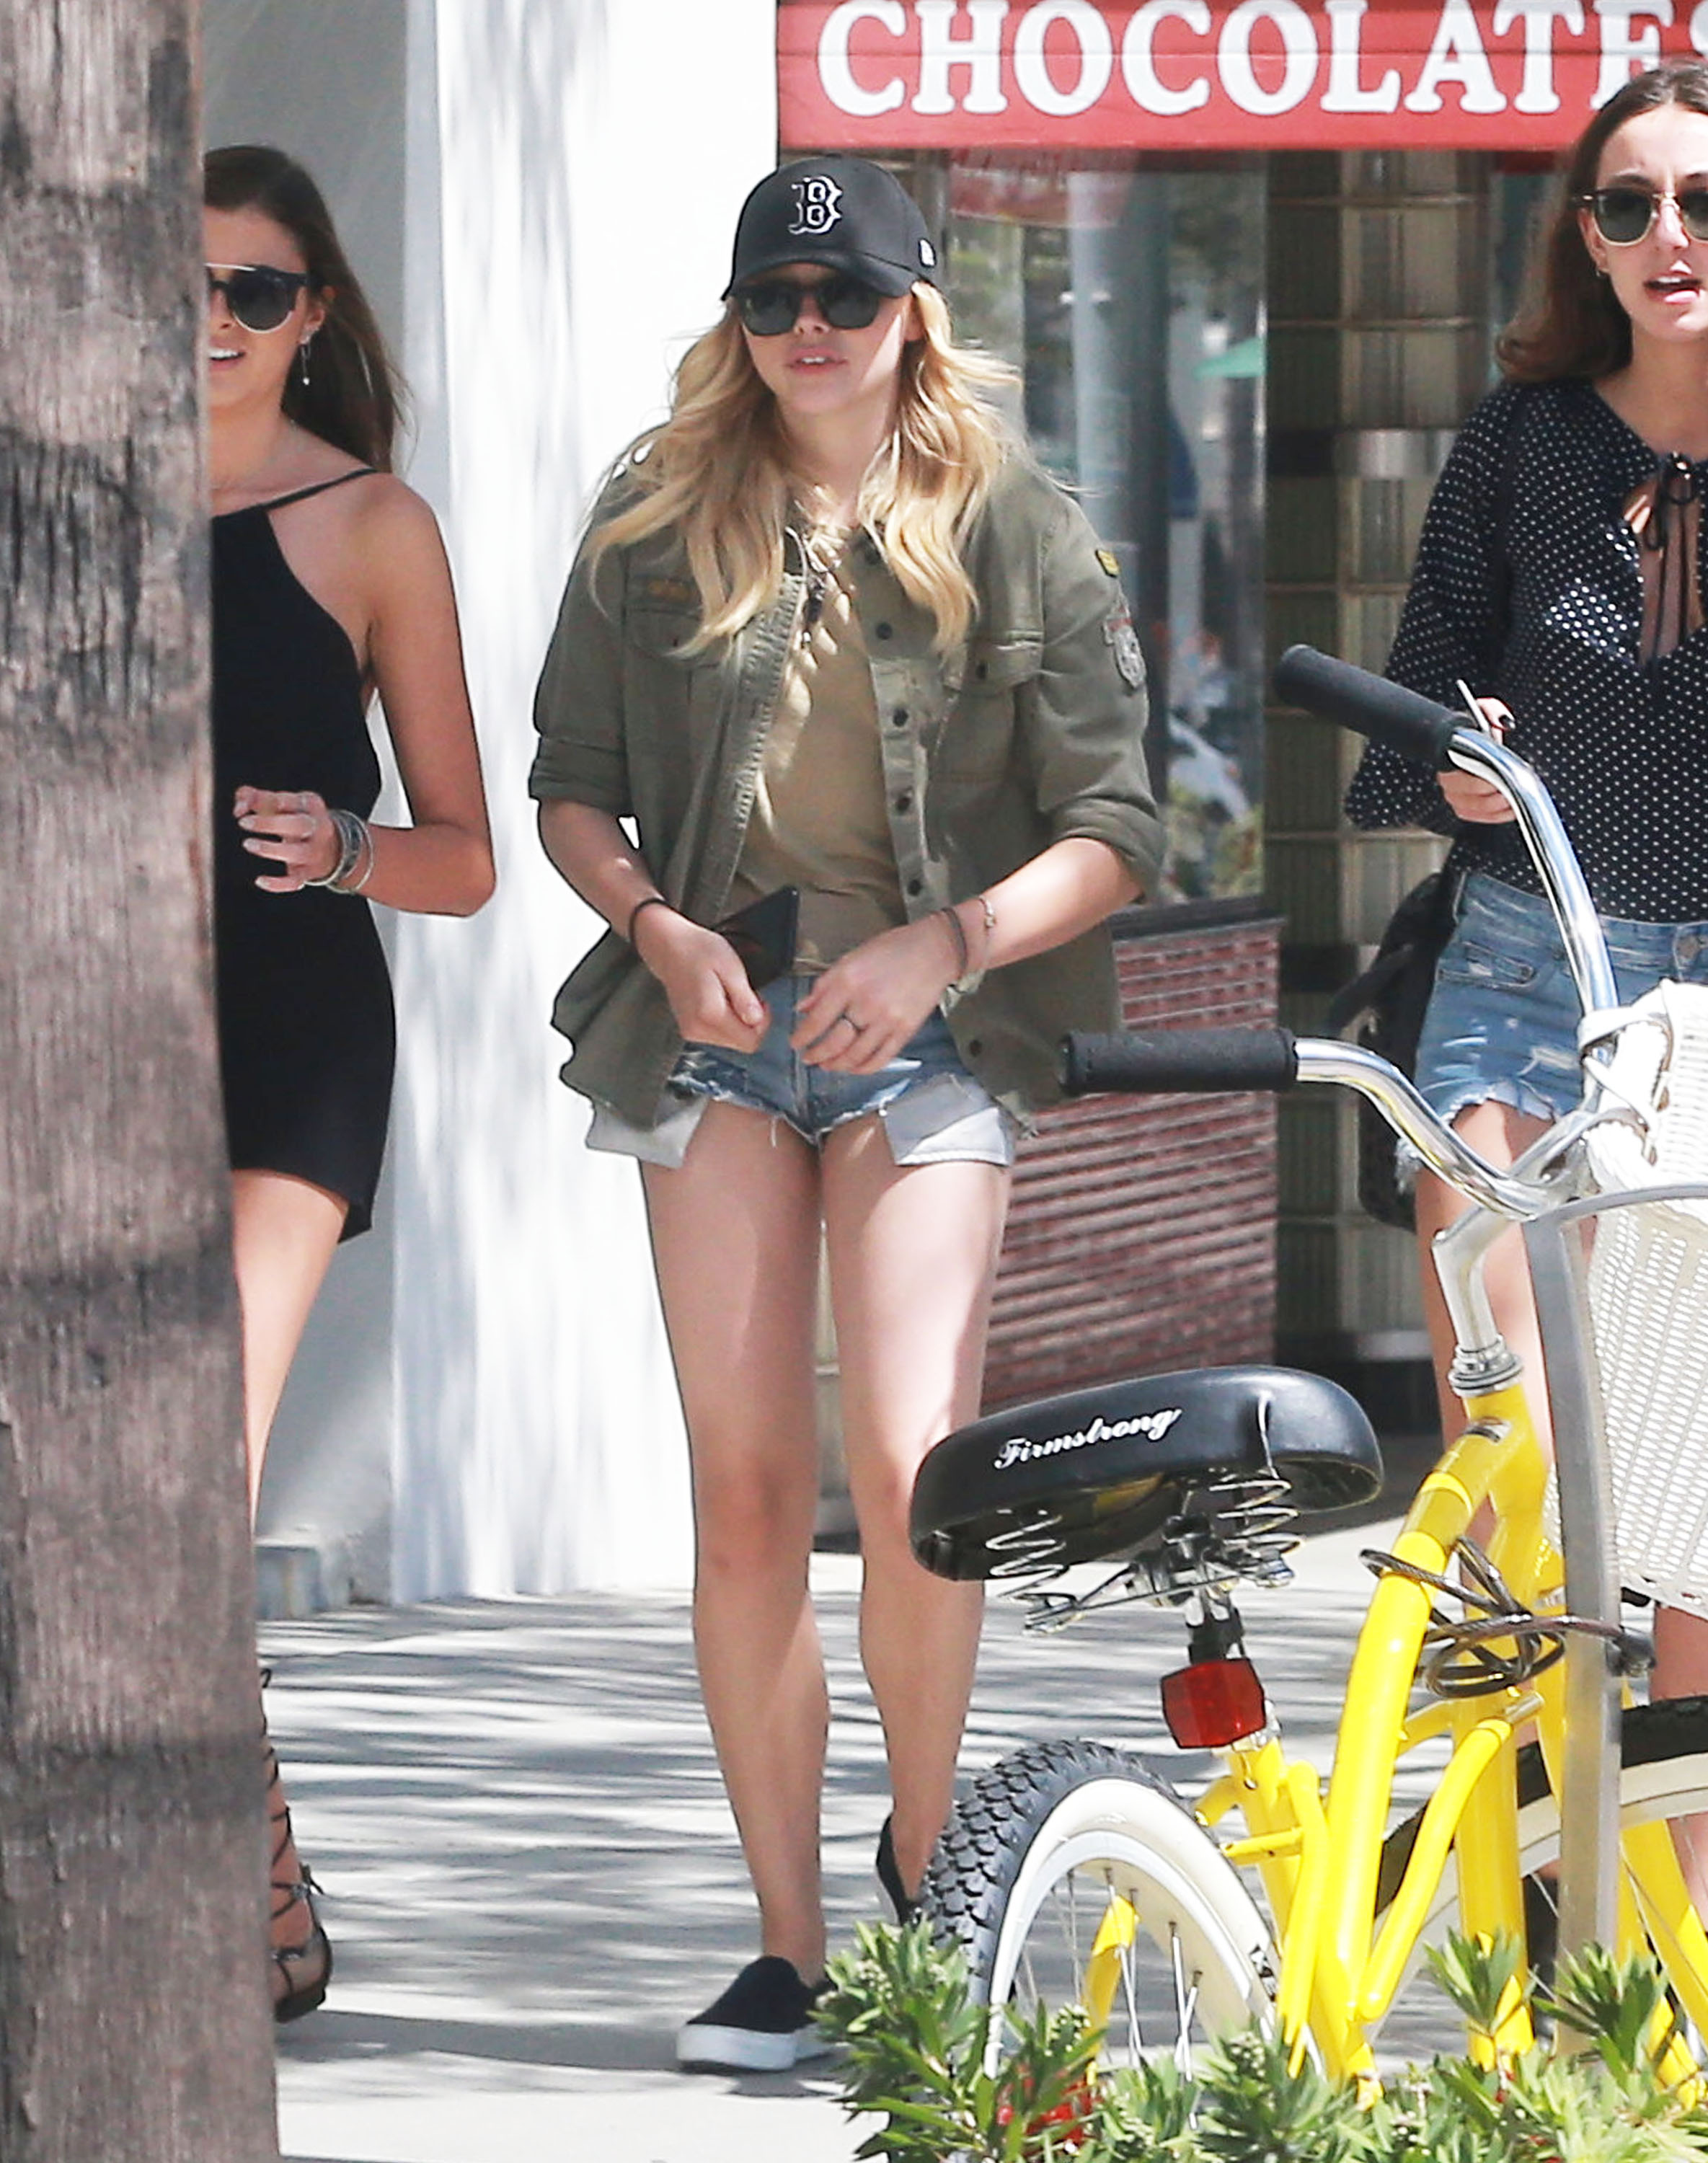 grace clohe cameltoe Chloe Grace Moretz Lunches With Friends